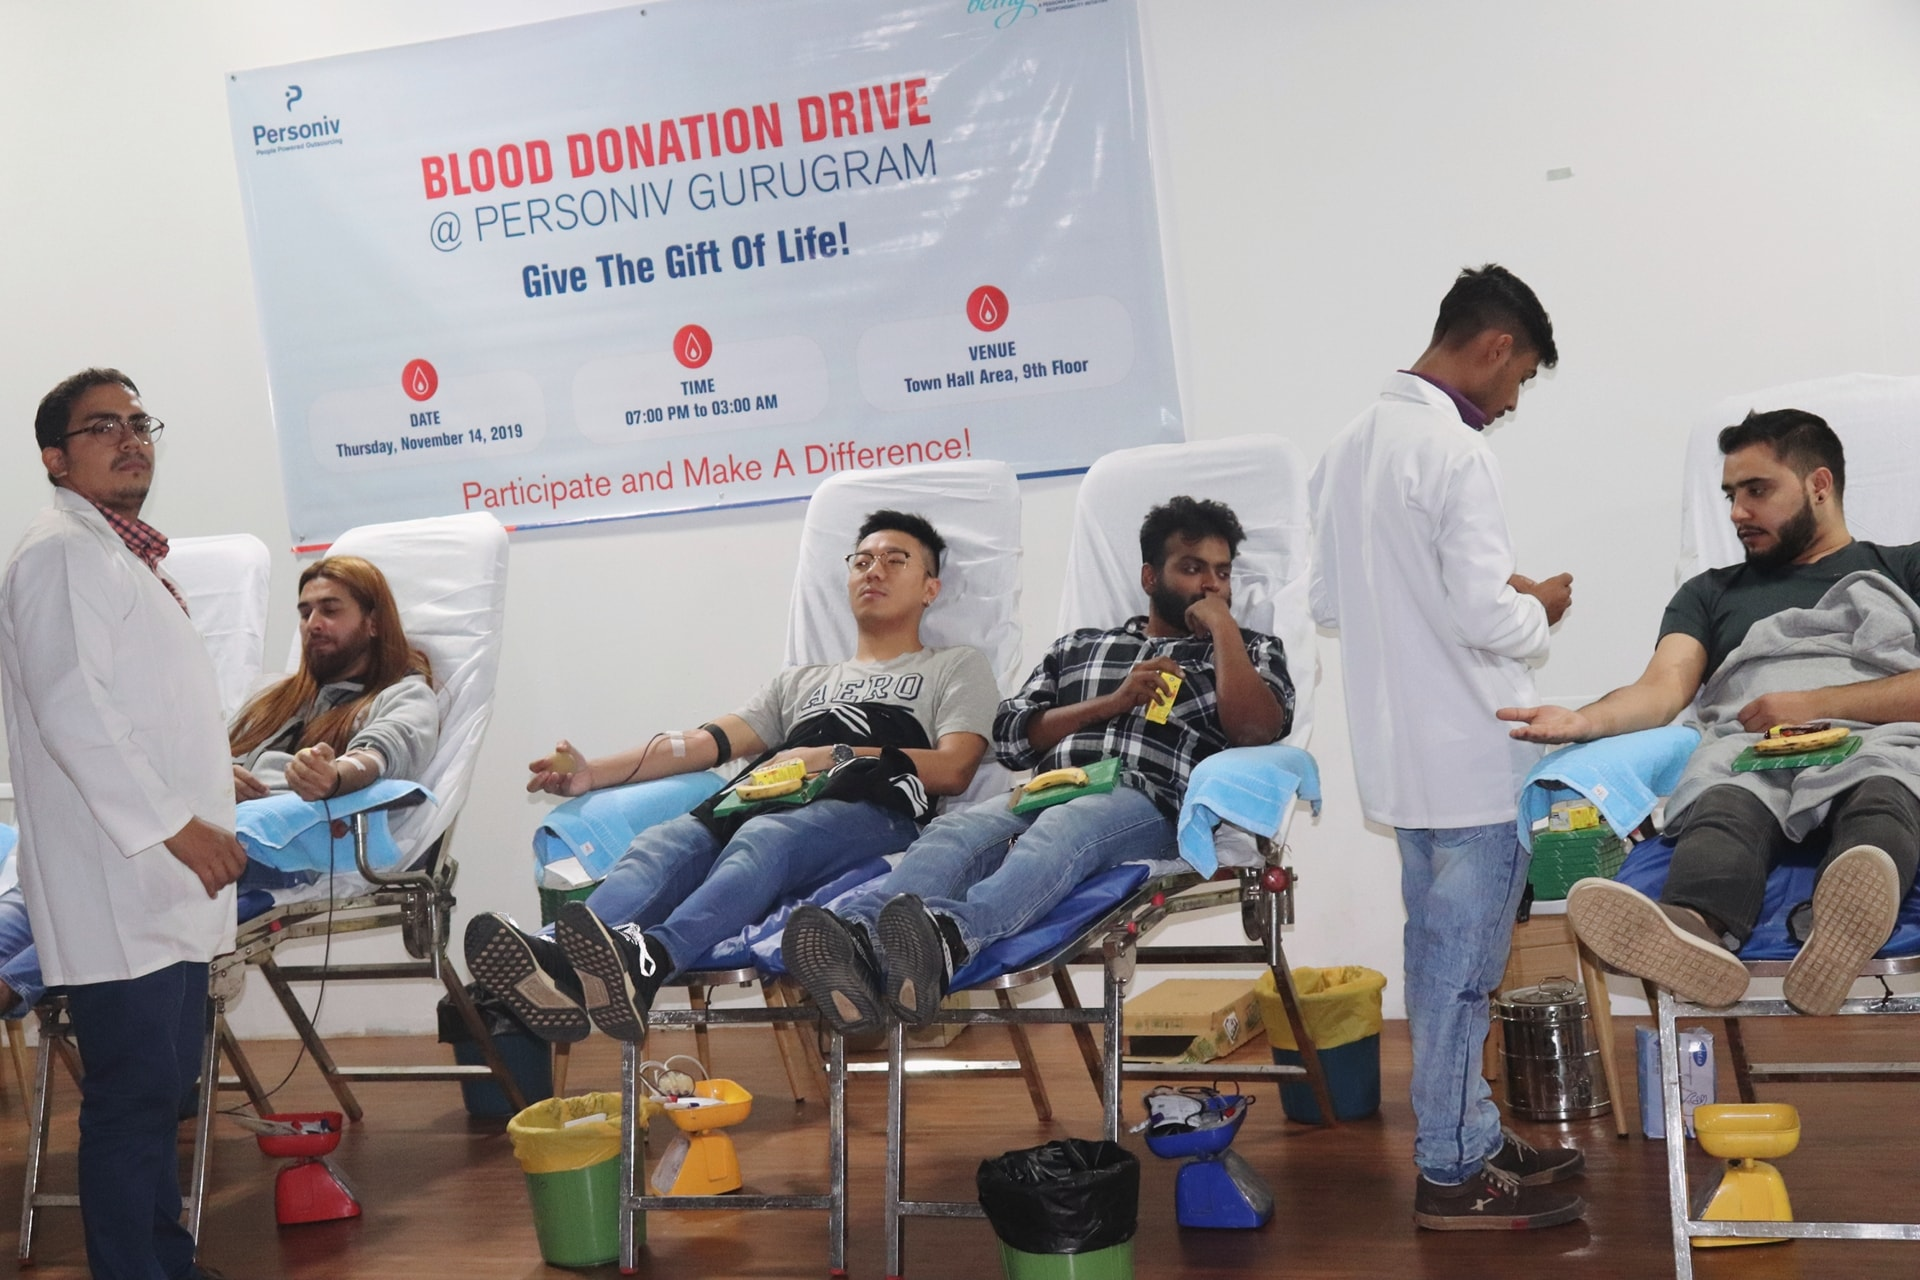 Personiv Blood Donation Drive